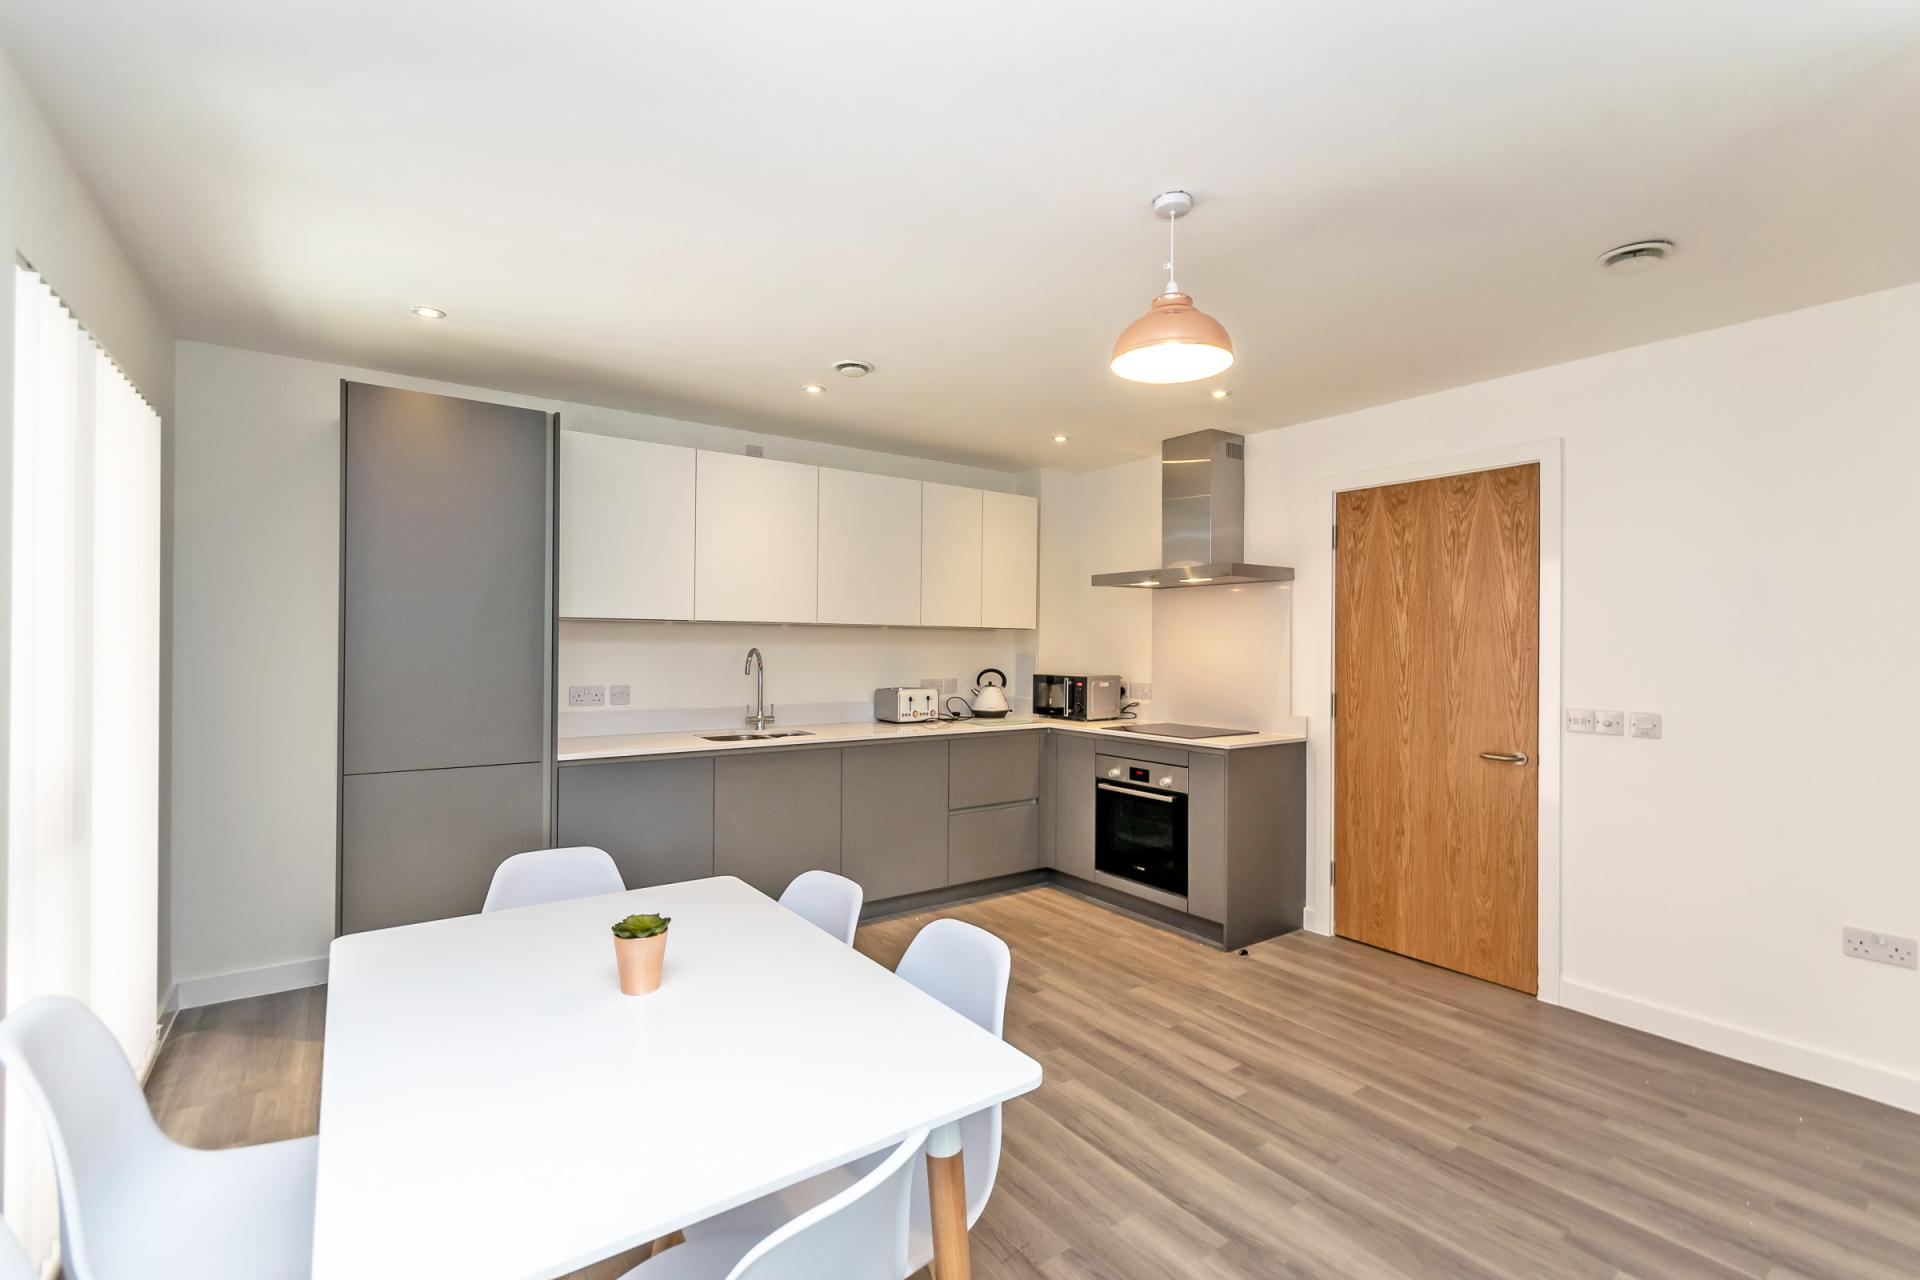 Kitchen at Halo House Serviced Apartments, Green Quarter, Manchester - Citybase Apartments